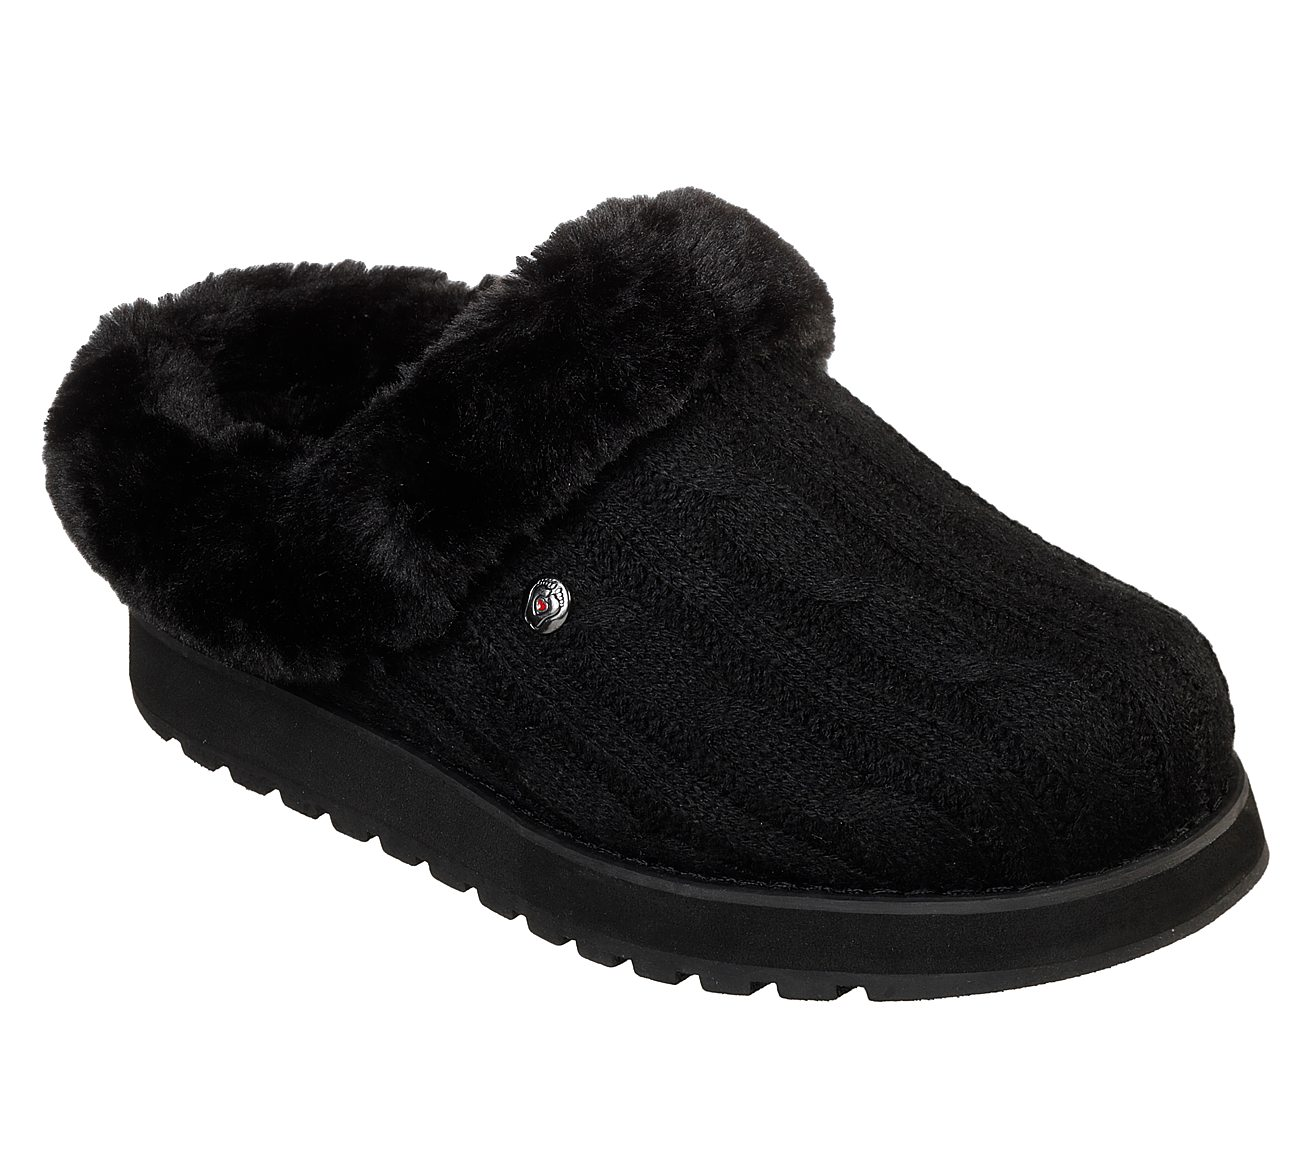 abdba6b1d445 Buy SKECHERS Bobs Keepsakes - Ice Storm SKECHERS Bobs Shoes only £23.80